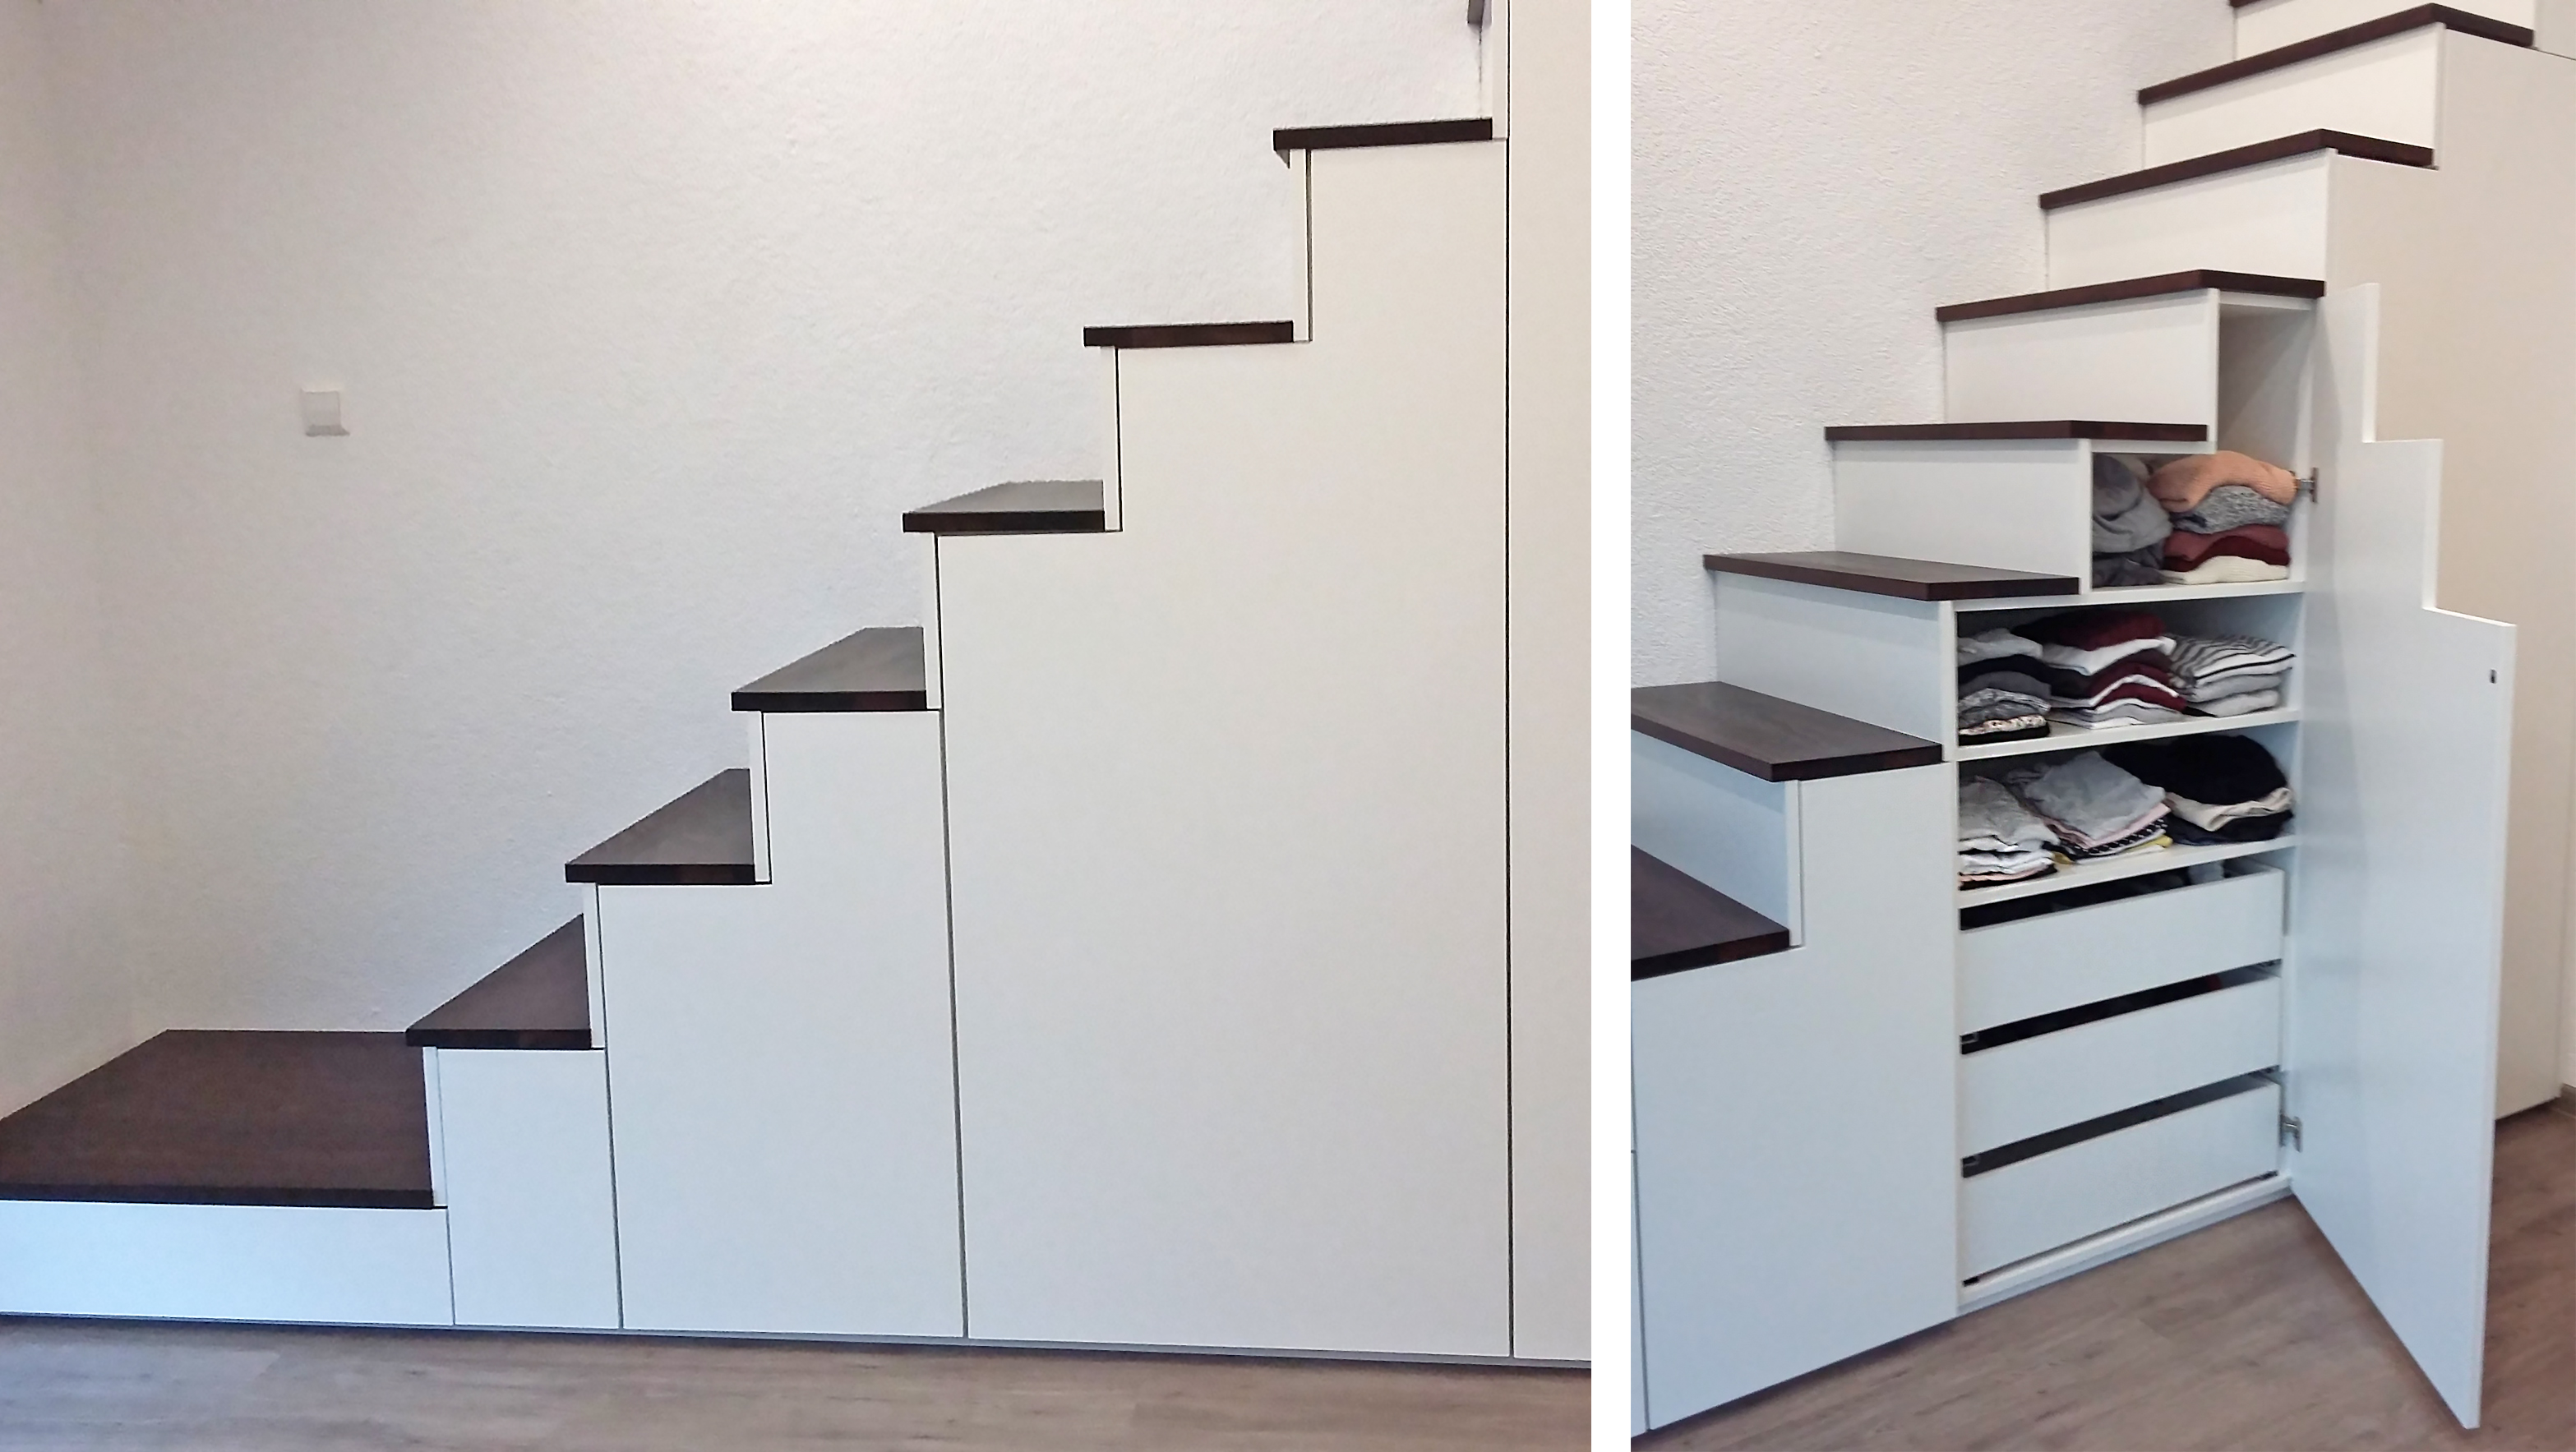 schrank unter treppe best latest amazing angenehm schrank unter treppe ikea ikea schrank. Black Bedroom Furniture Sets. Home Design Ideas